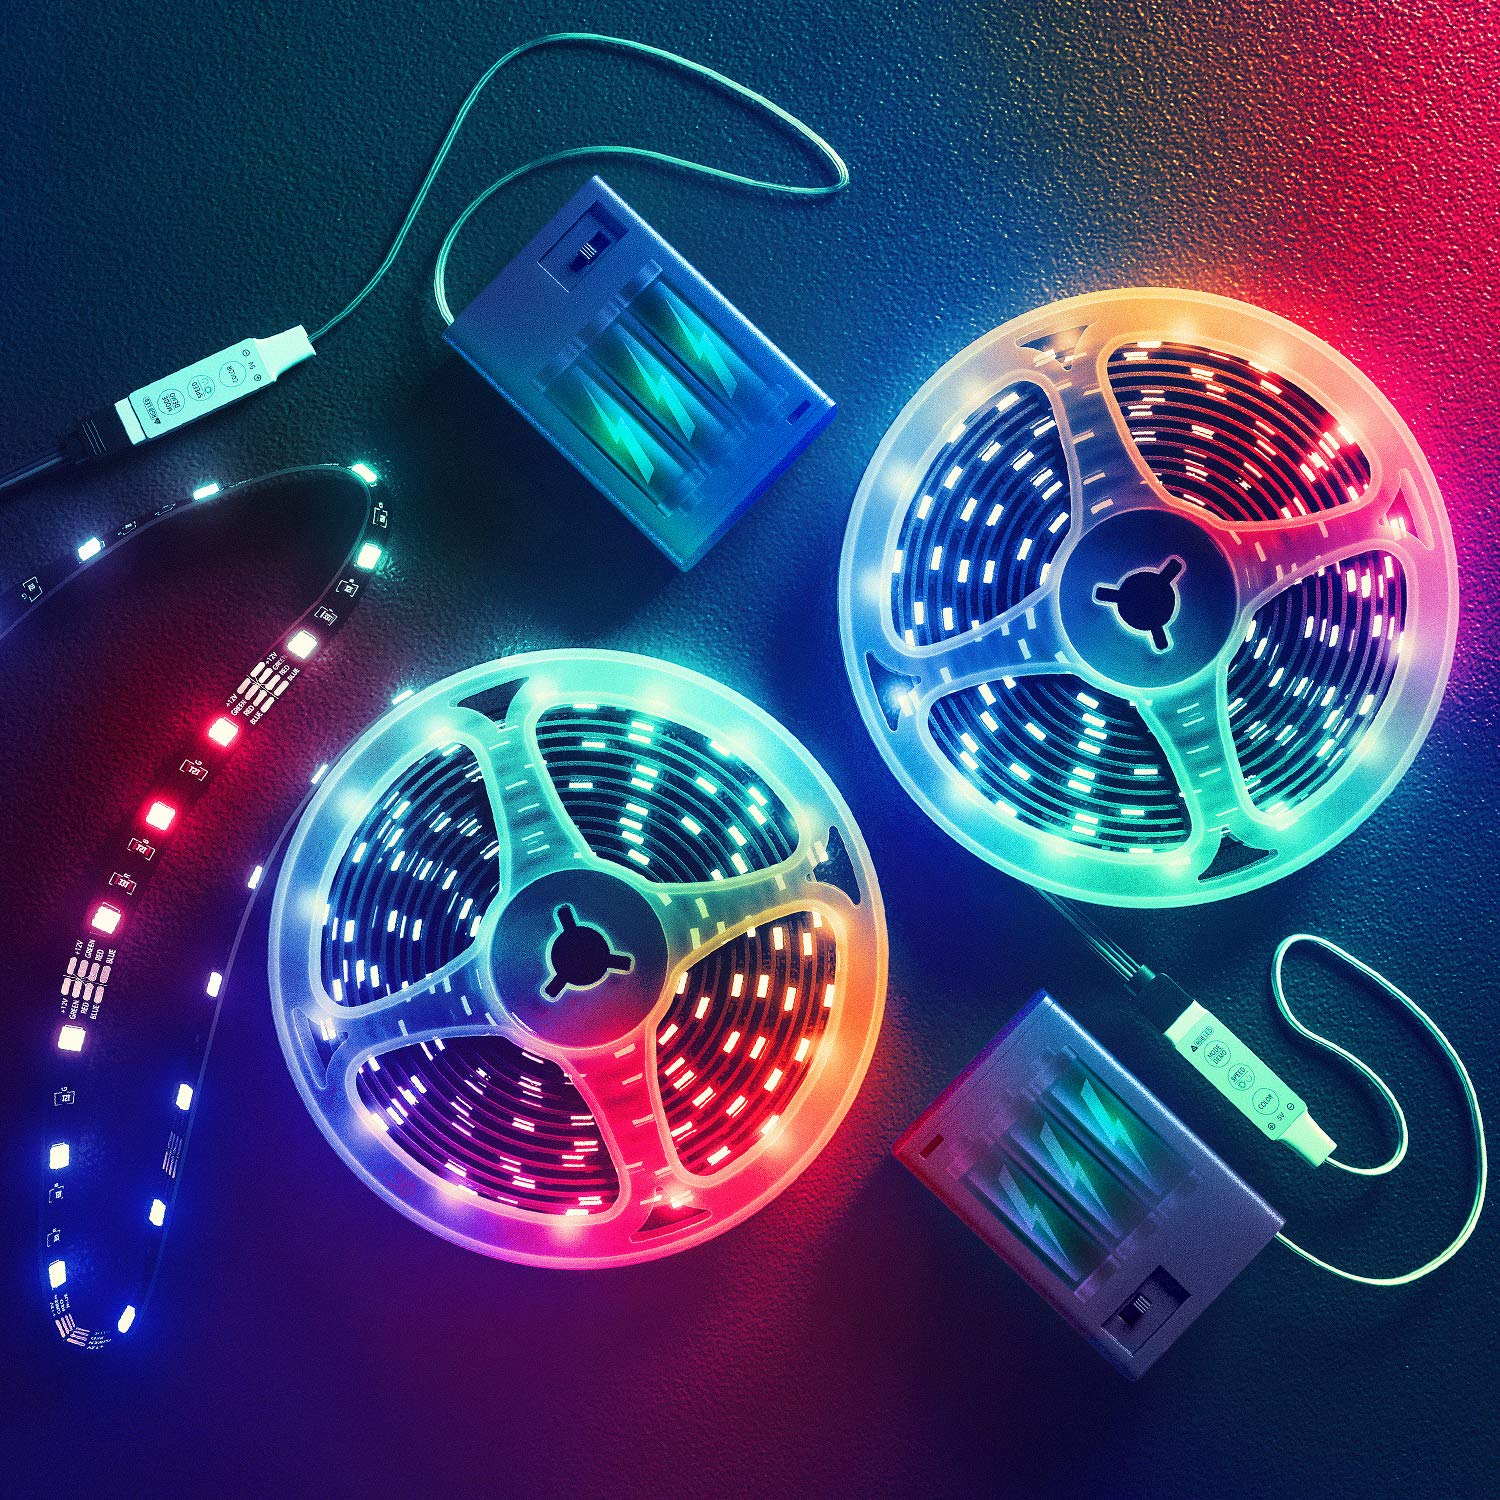 13.2 Feet Battery Powered Led Strip Lights,DIY Color Changing Led Lights Battery Operated. Integrated Controller for Bedroom, Sports,Outdoors, Party,Costume and Dress up (13.2 Feet)